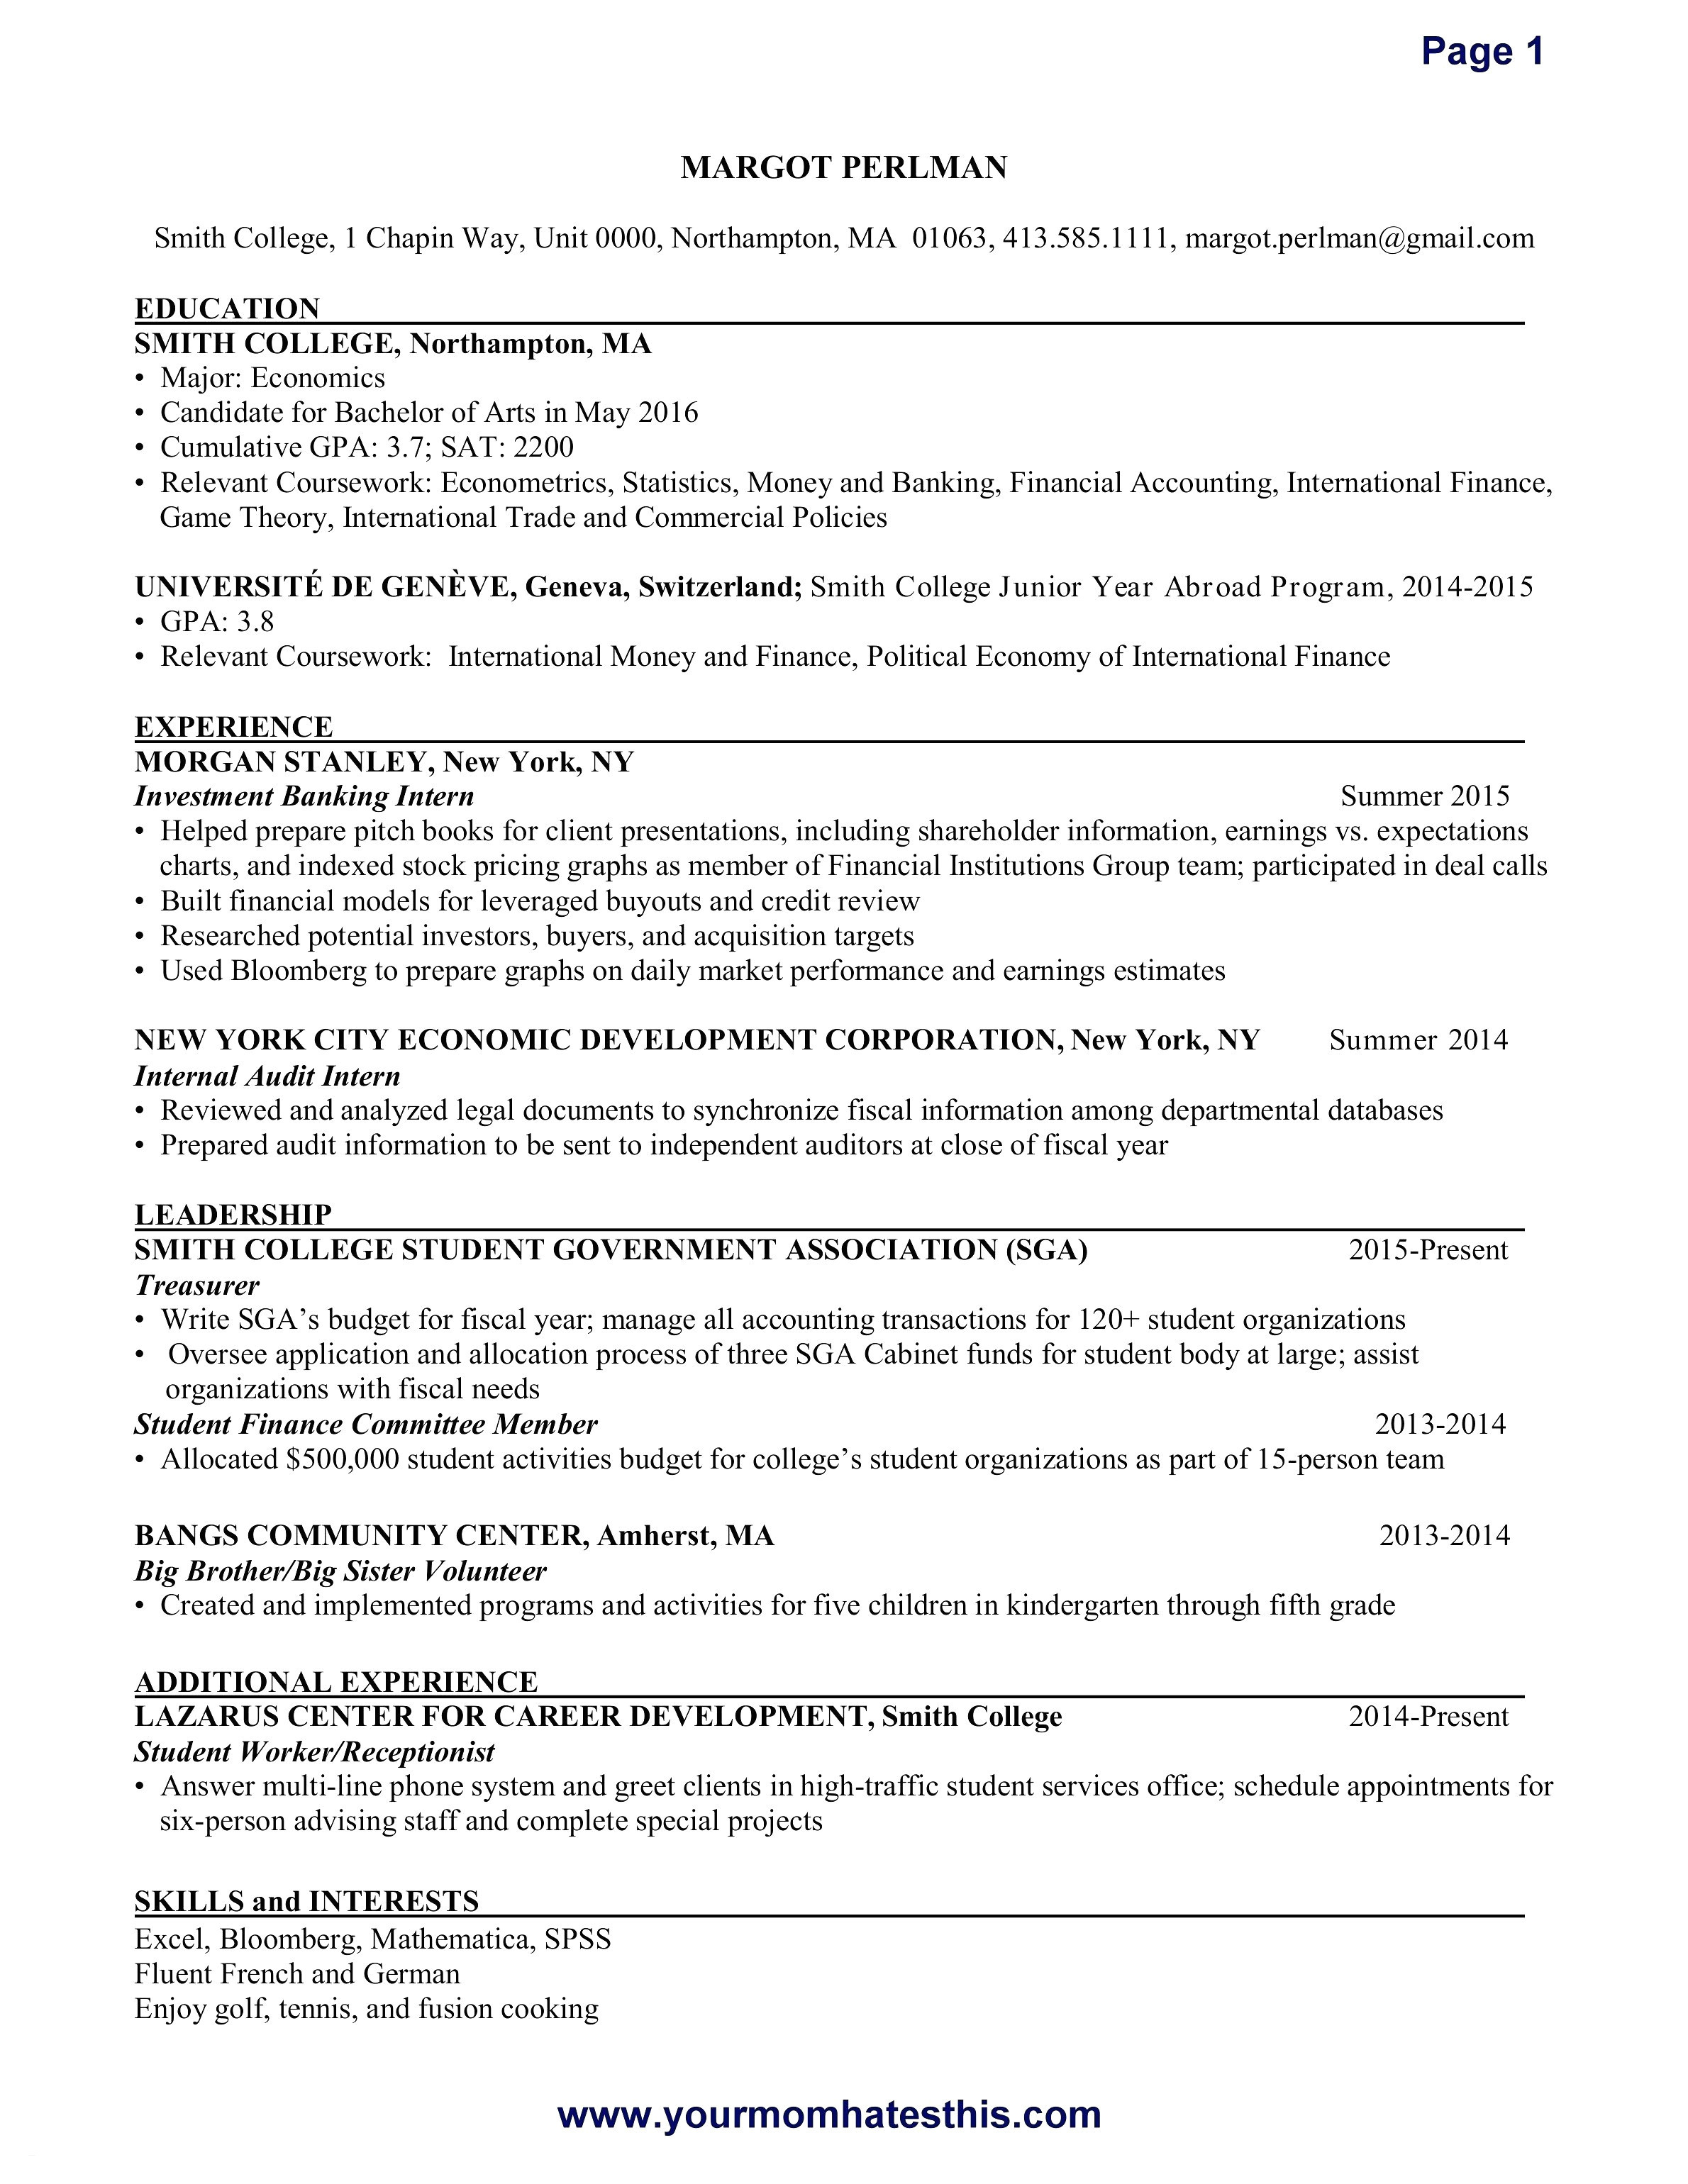 Career Fair Resume Template - Awesome Security Ficer Resume Sample